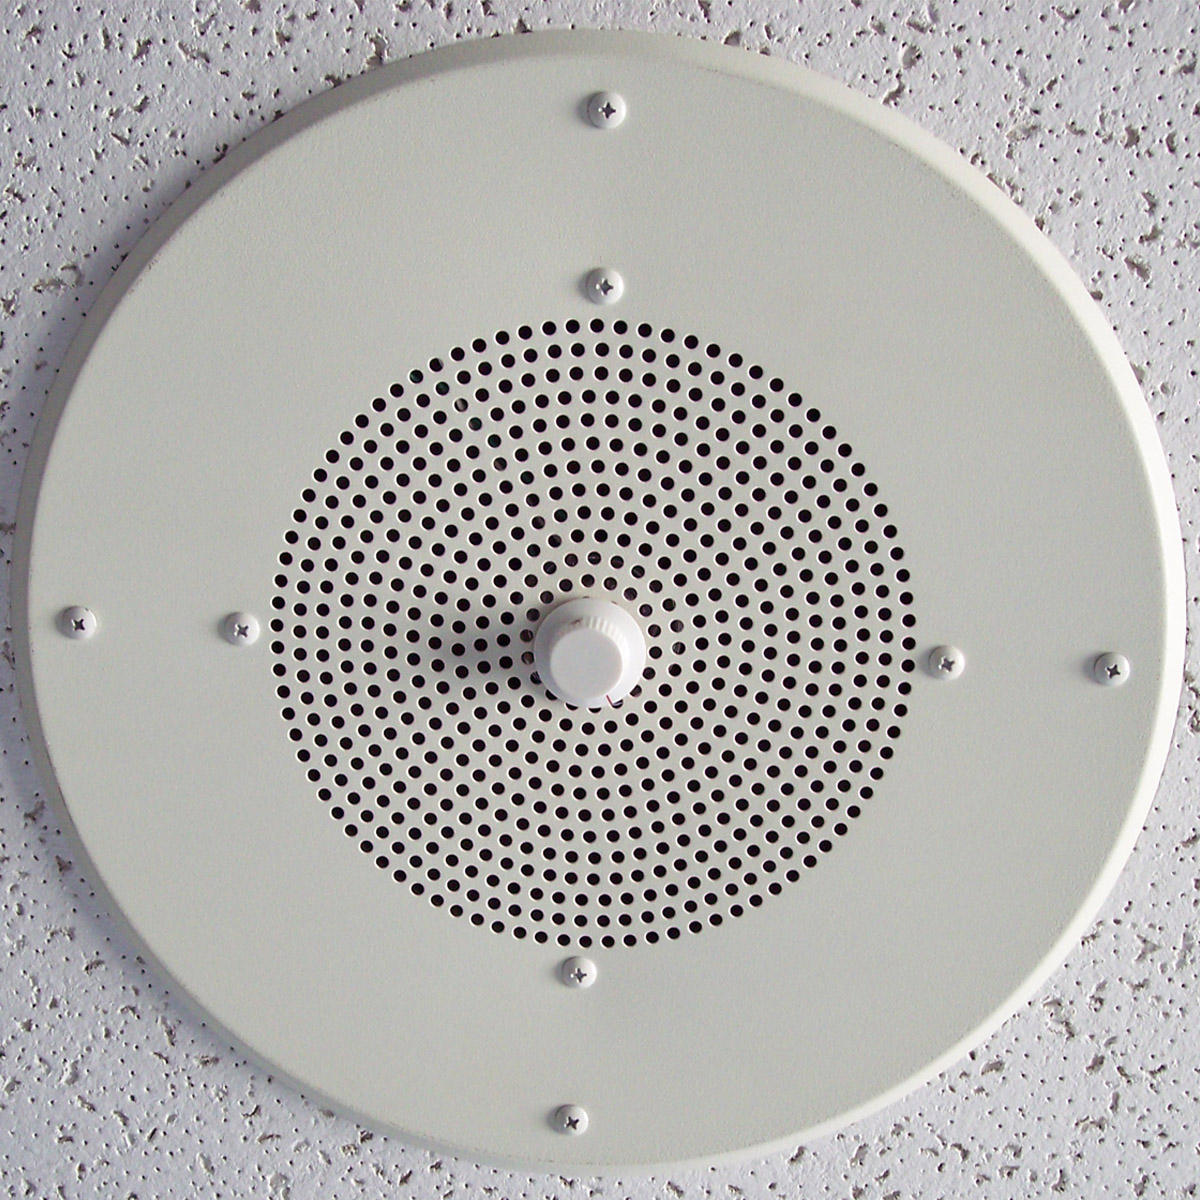 Weltron Ceiling Speaker With Metal Grill Transformer And Volume Control On Ws 8010gtl